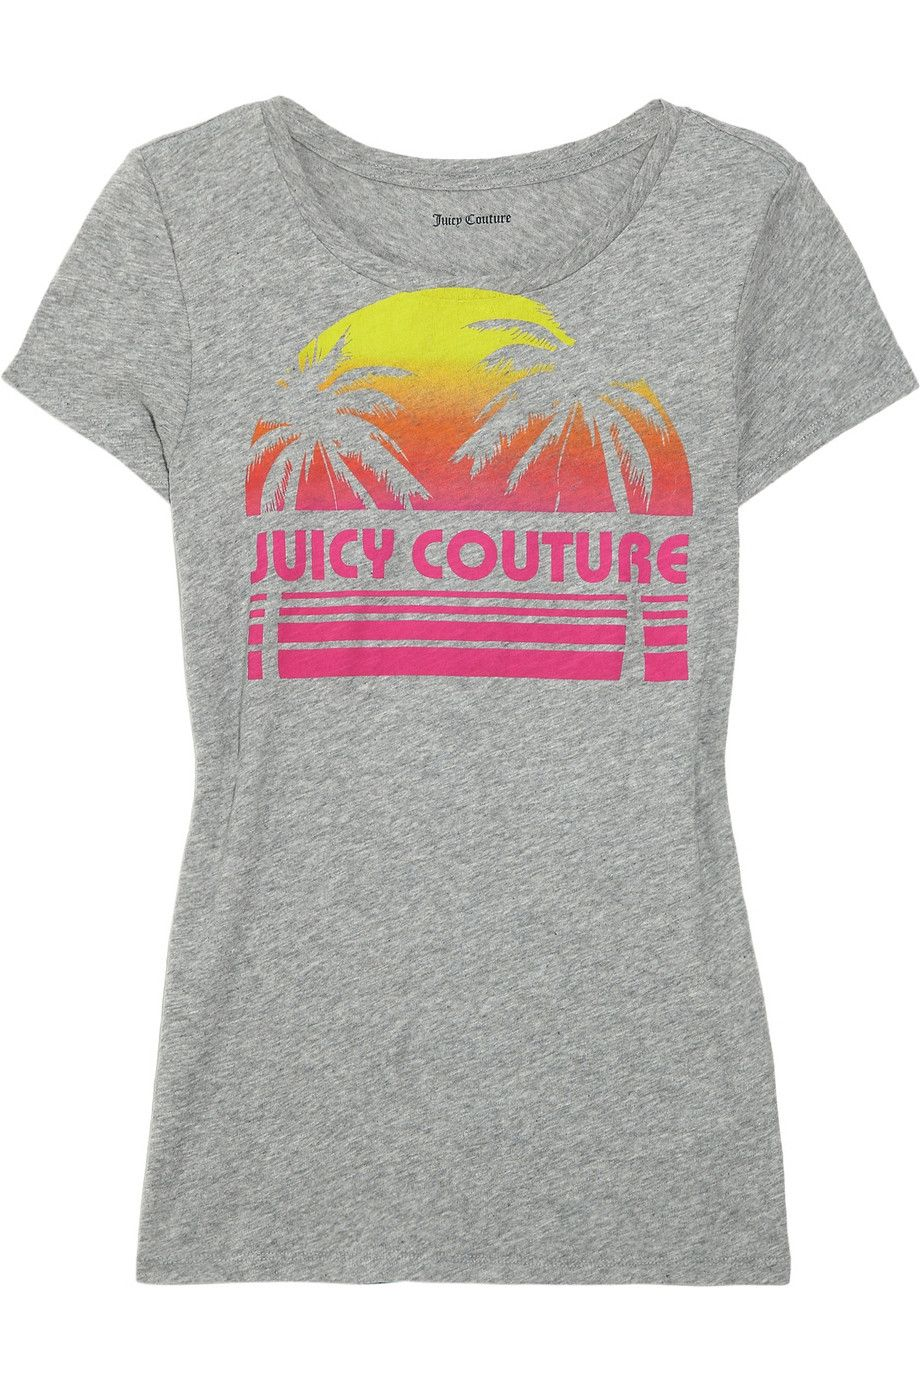 Juicy Couture tshirt...hoping it ll be on sale soon!  b53a487f7987